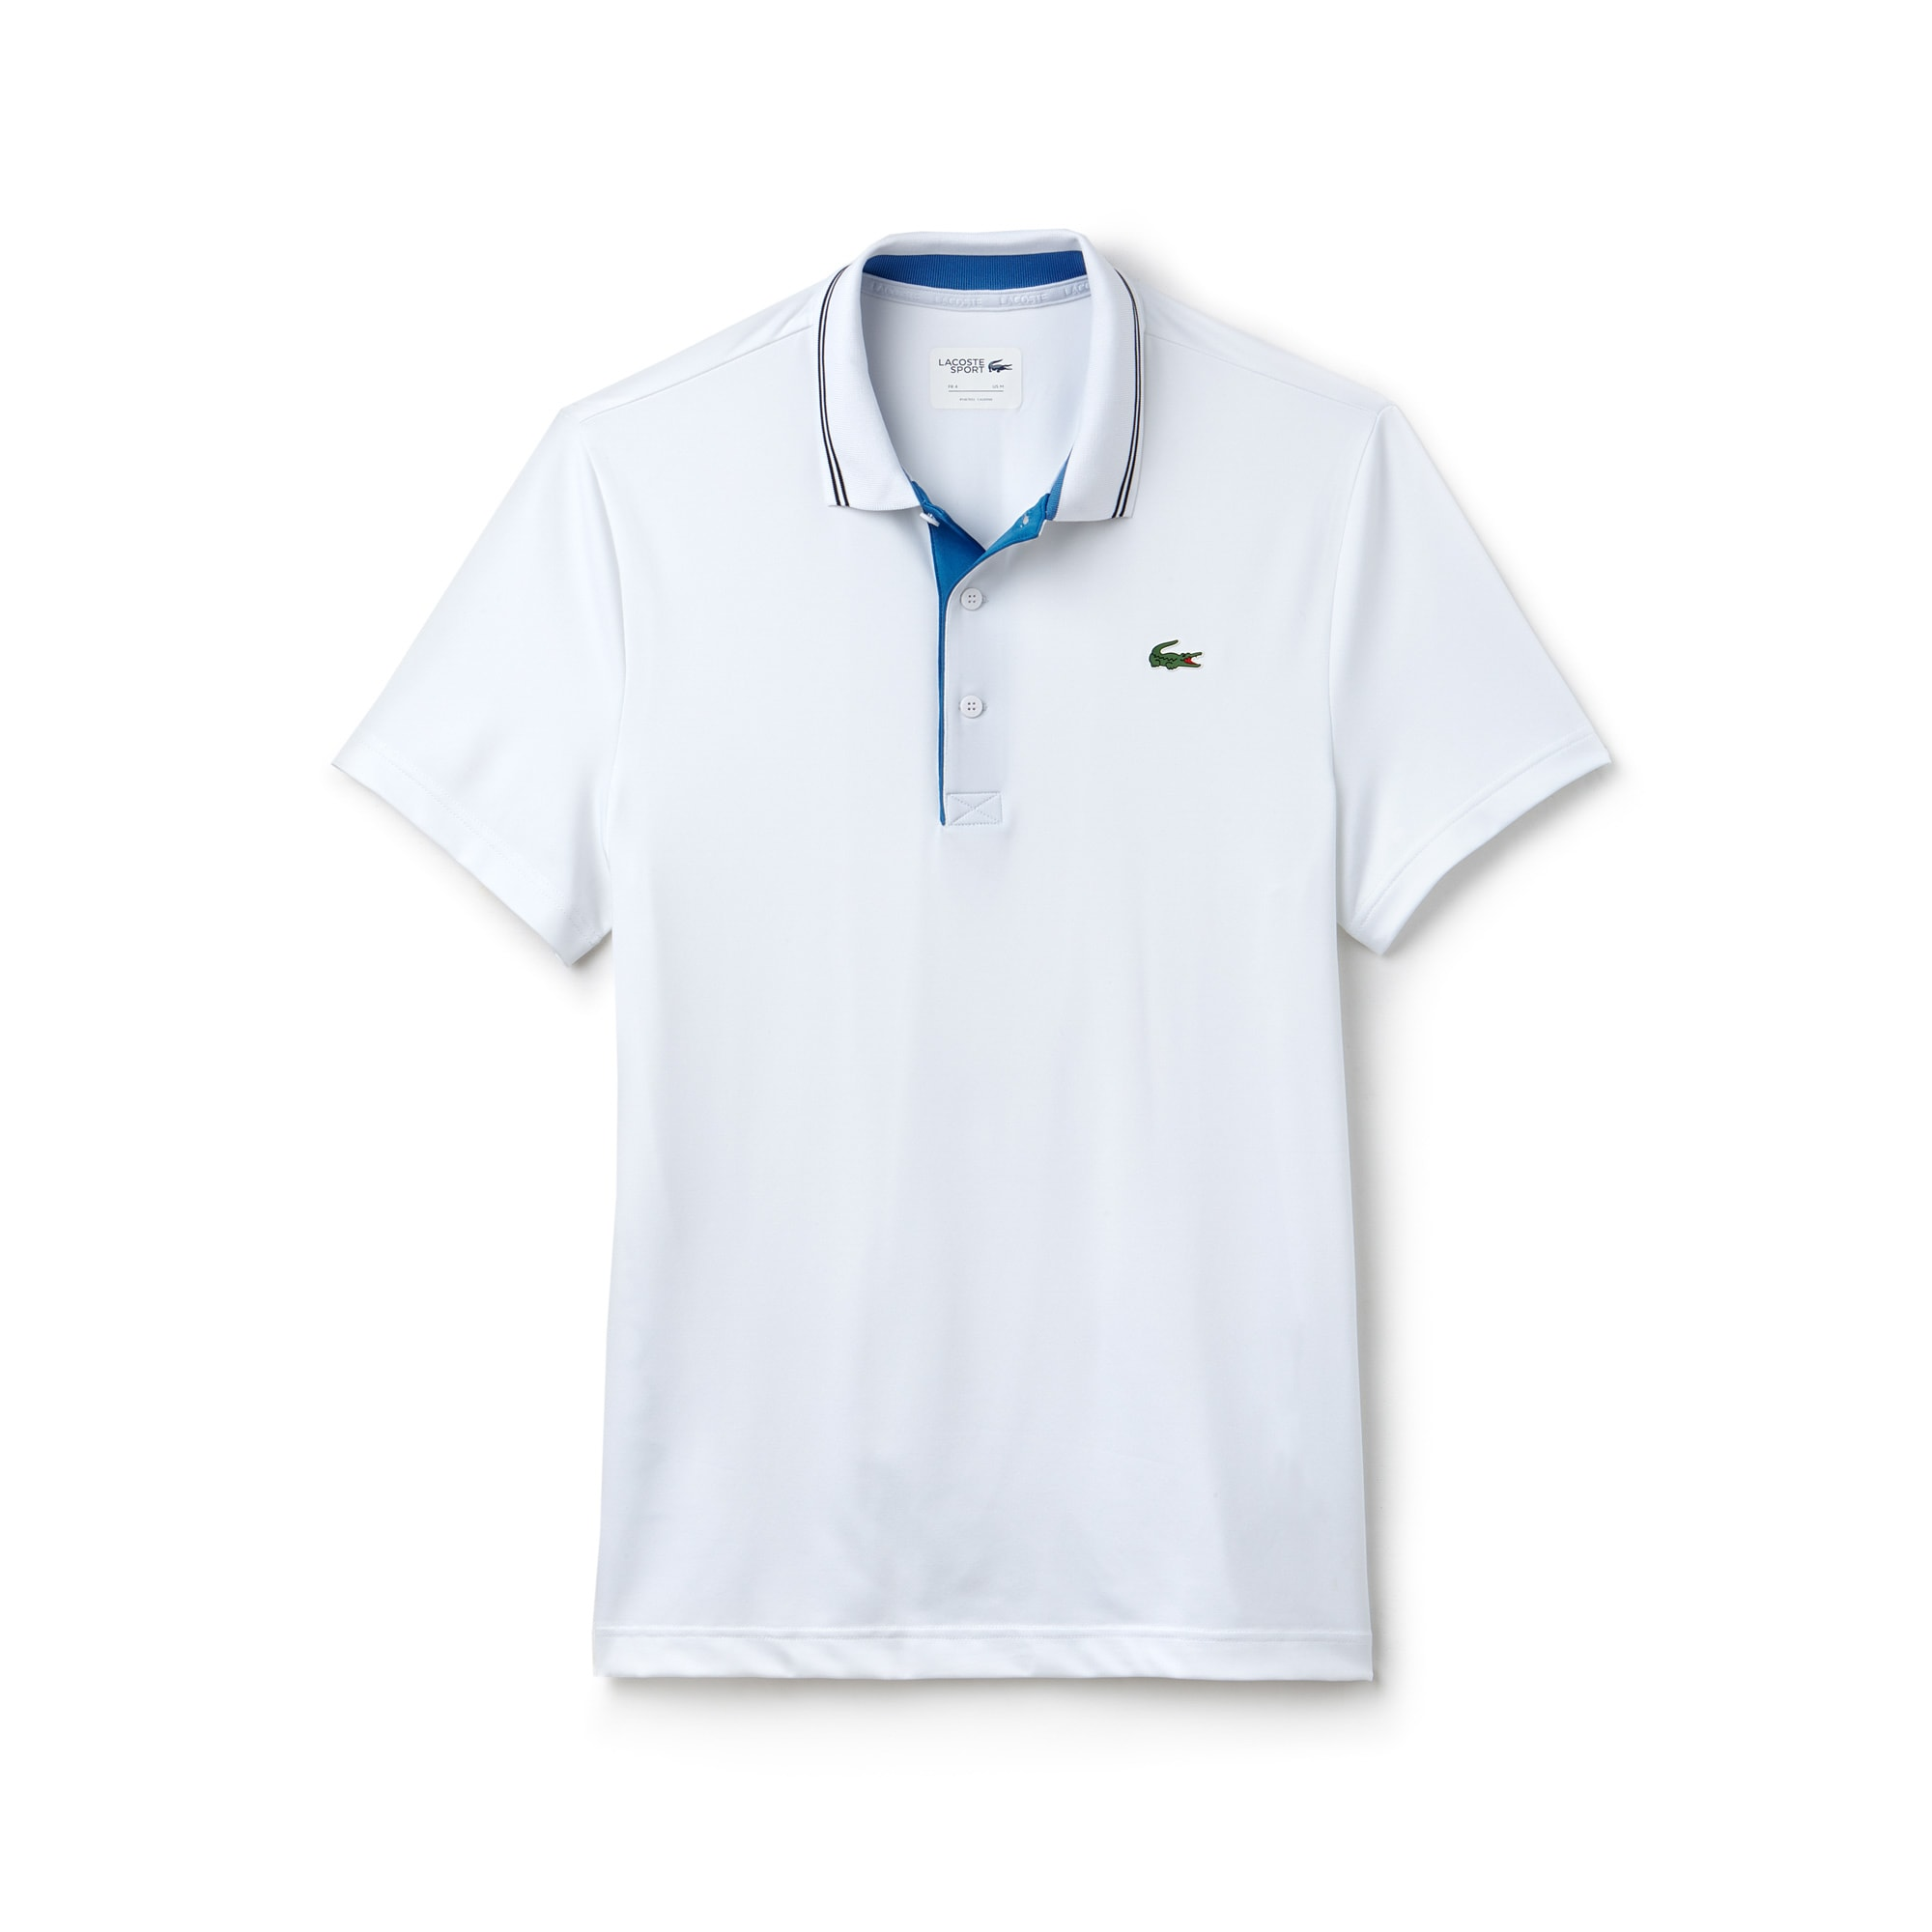 라코스테 Lacoste Mens SPORT Lettering Stretch Technical Jersey Golf Polo Shirt,white / blue / navy blue